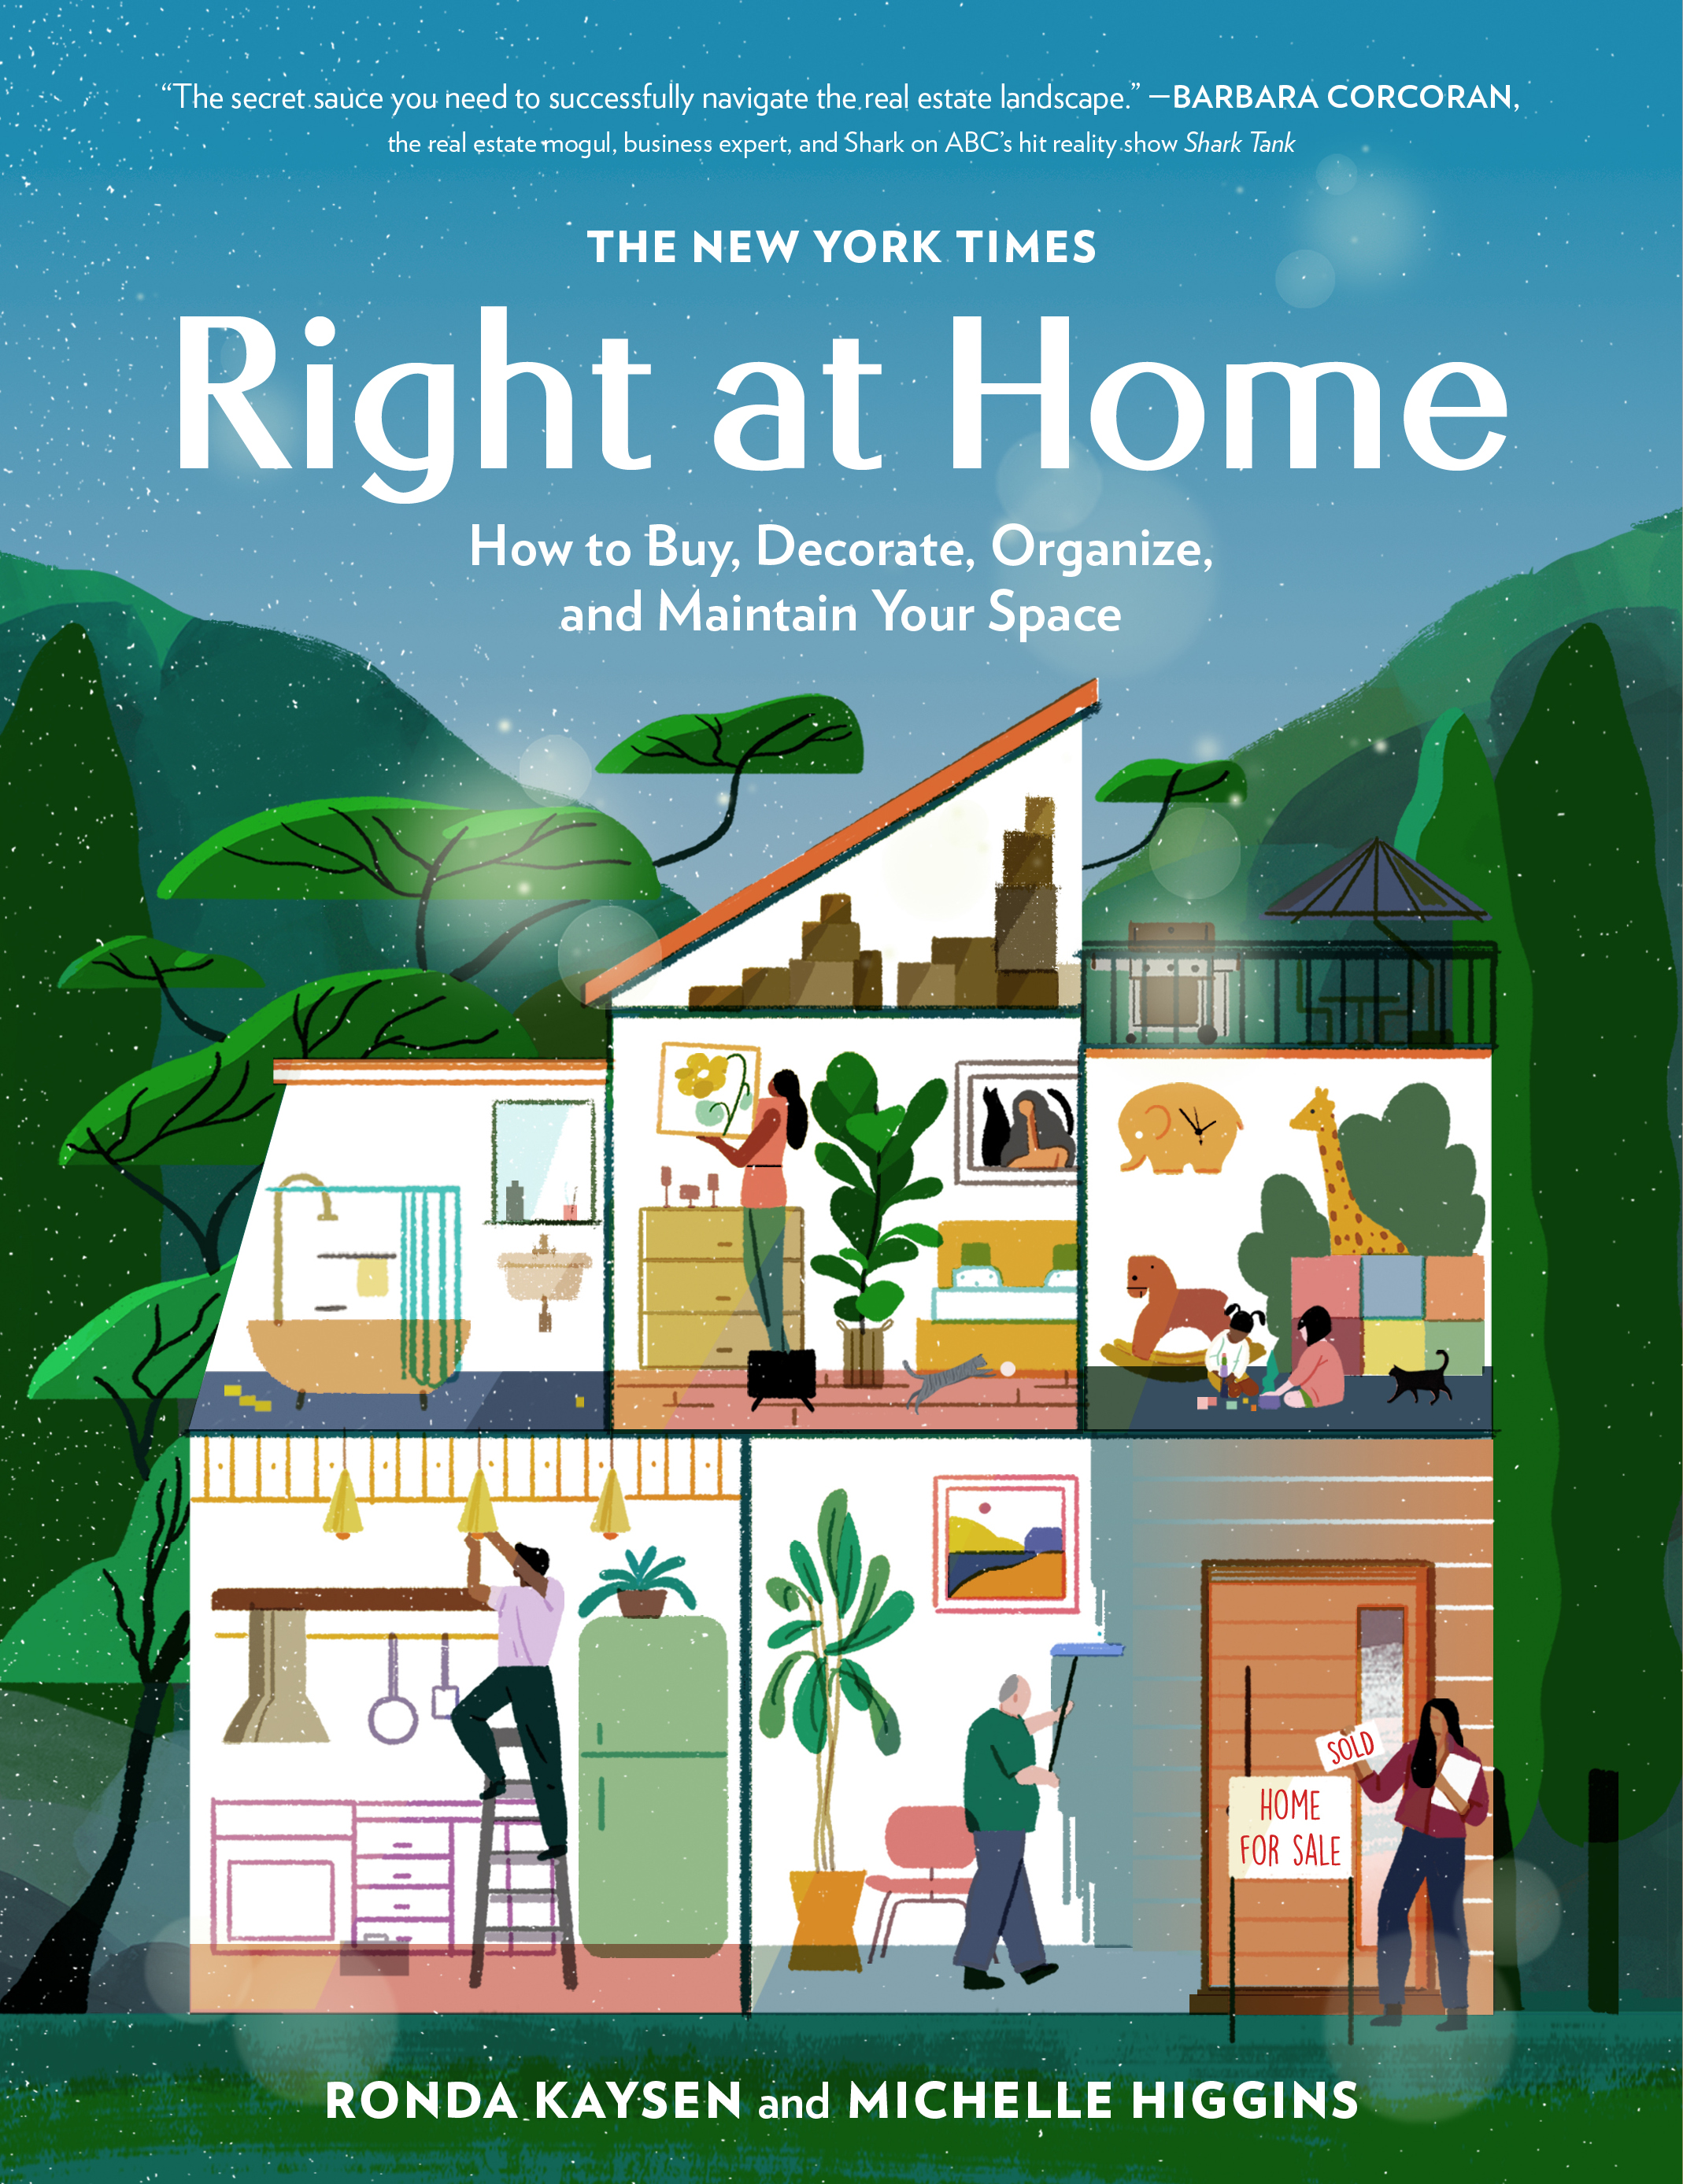 Book Launch: The New York Times' Right At Home by Ronda Kaysen and Michelle Higgins (POSTPONED)